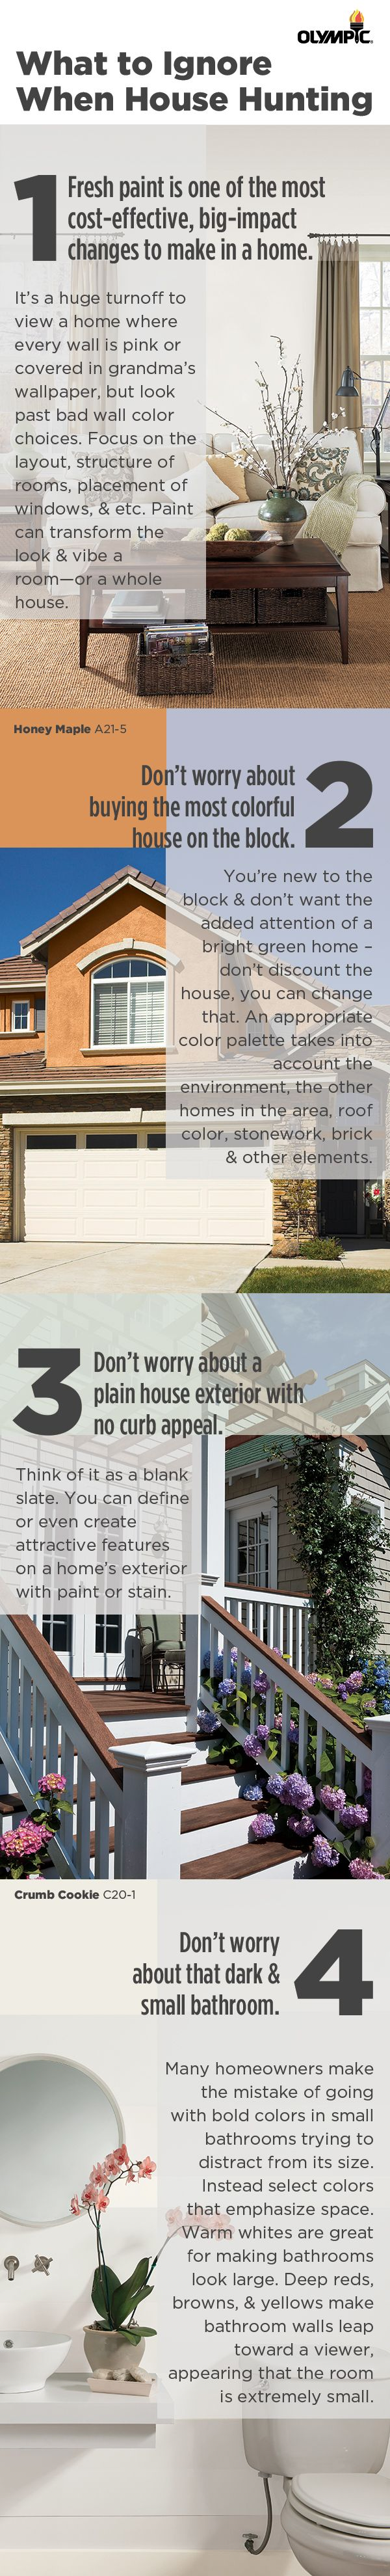 Lovely 118 Best Buy A House Images On Pinterest | Home Buying Tips, Real Estate  Business And Real Estate Broker